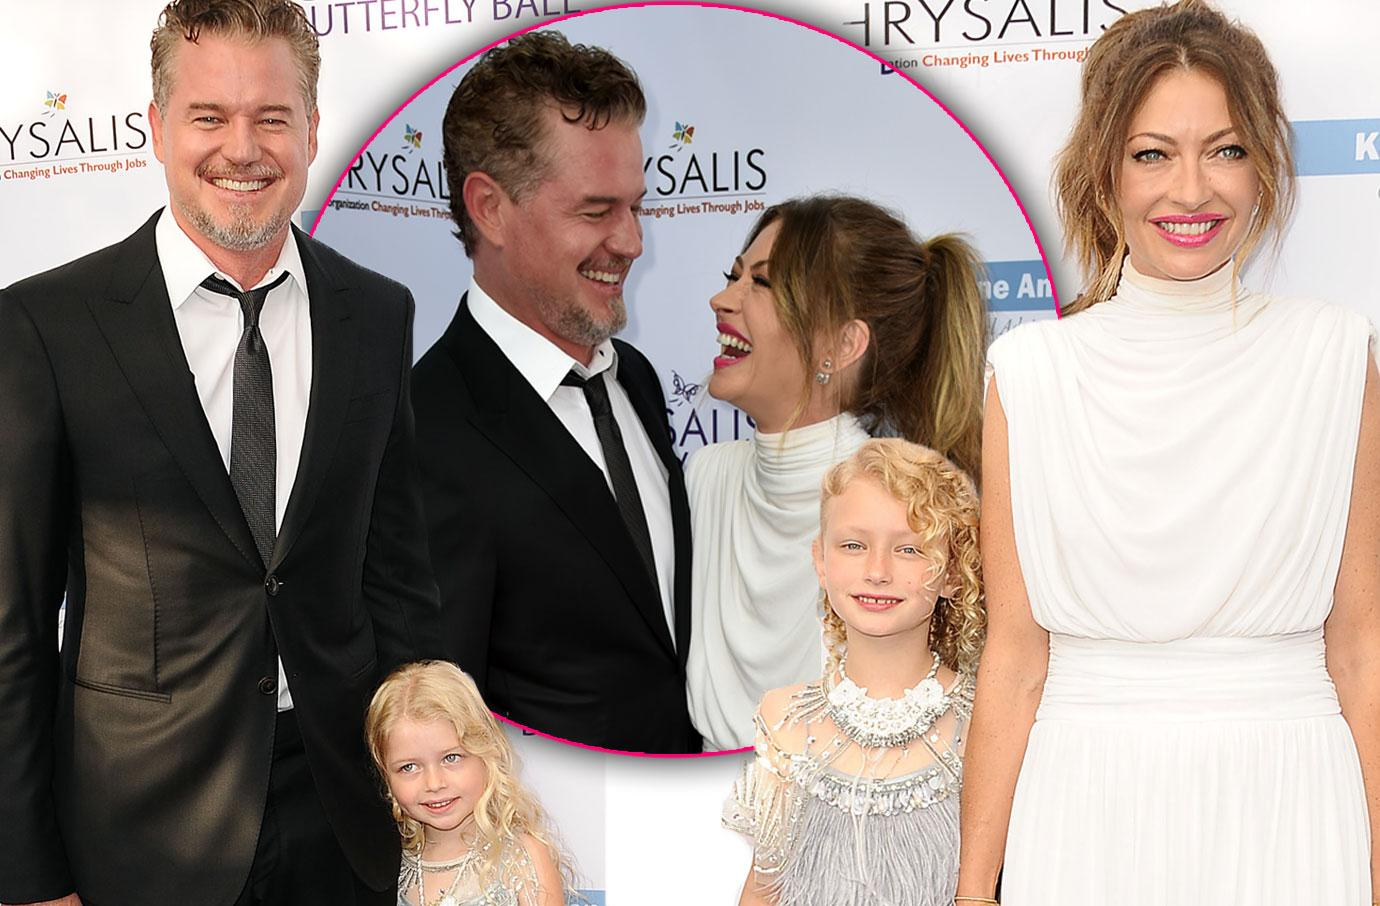 Eric Dane Makes First Public Appearance Since Depression Battle